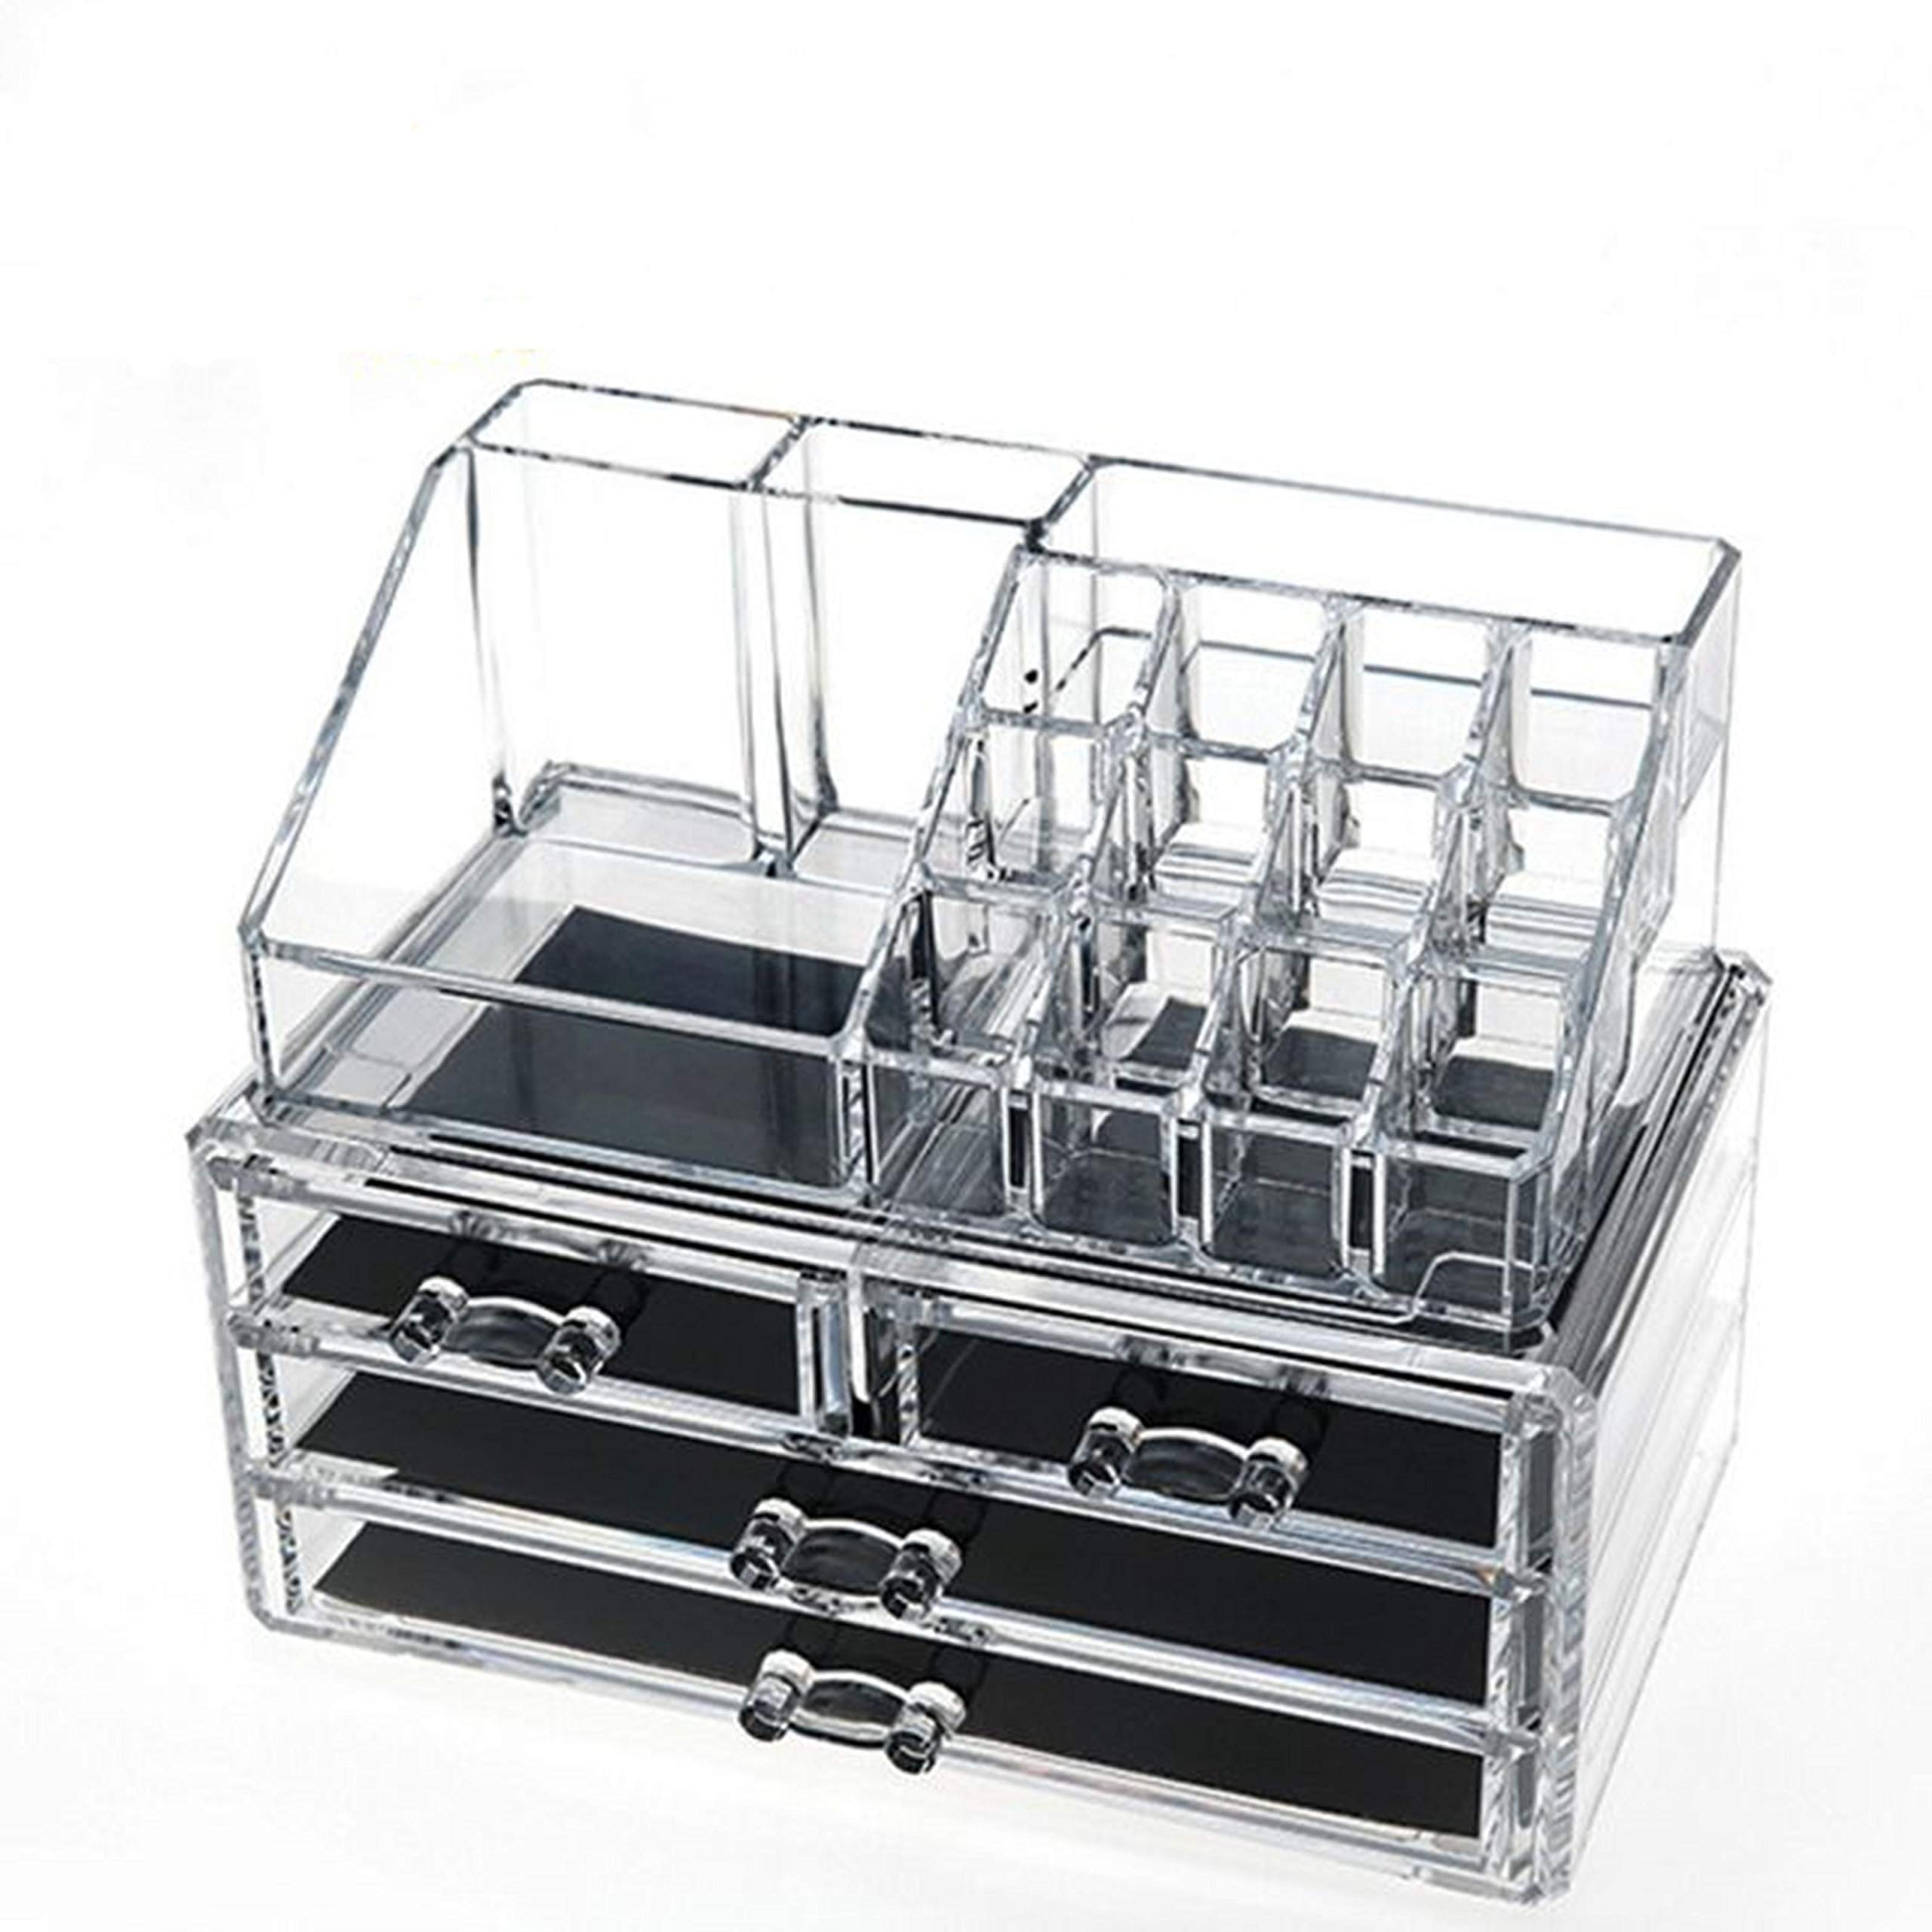 Clear Acrylic Cosmetic Organizer Makeup Holder Display Jewelry Storage Case 4 Drawer For Lipstick Liner Brush Holder